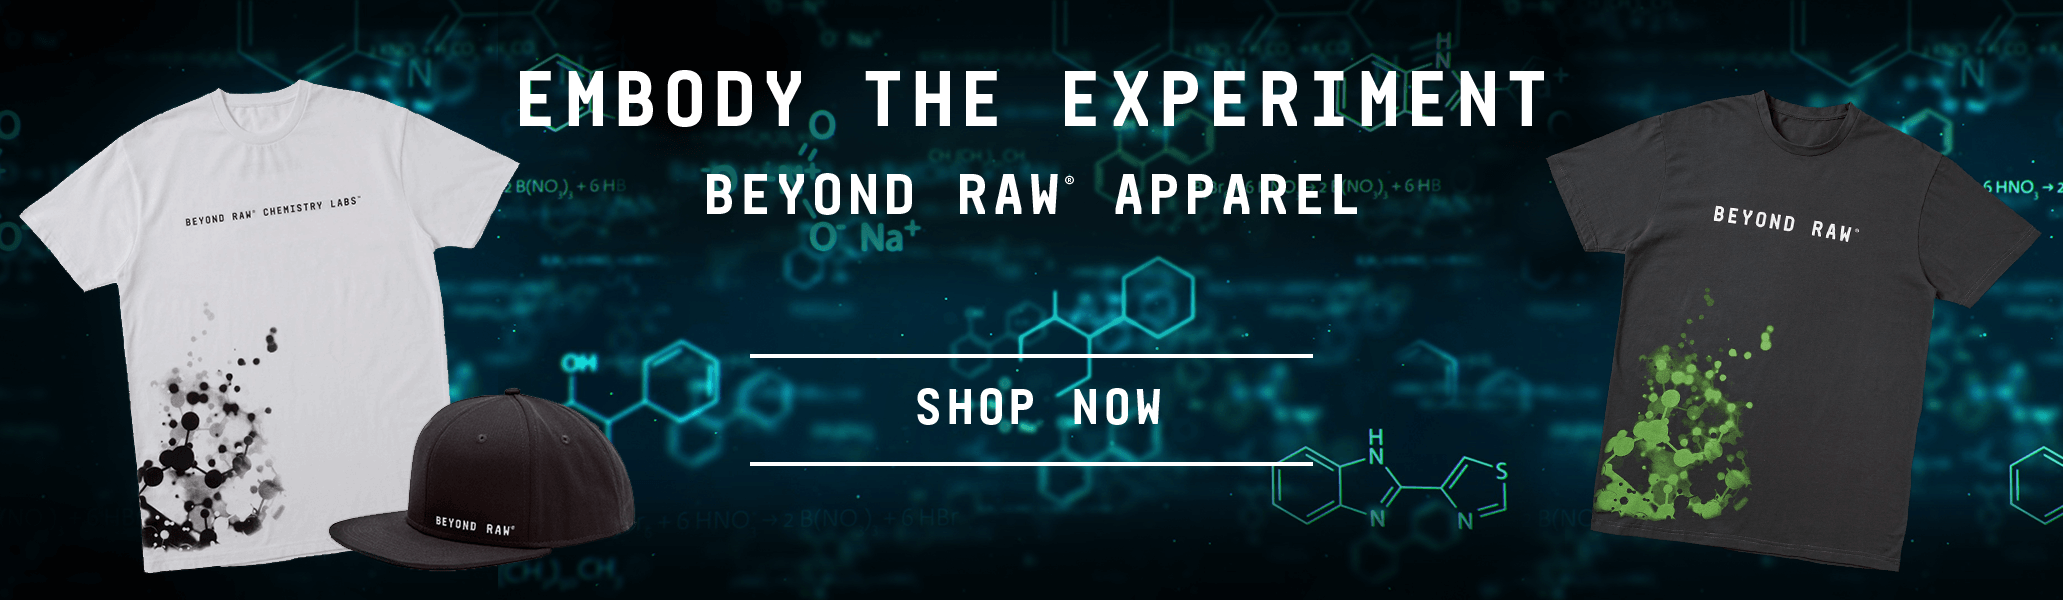 Embody the Experience - Beyond Raw Apparel - Shop Now